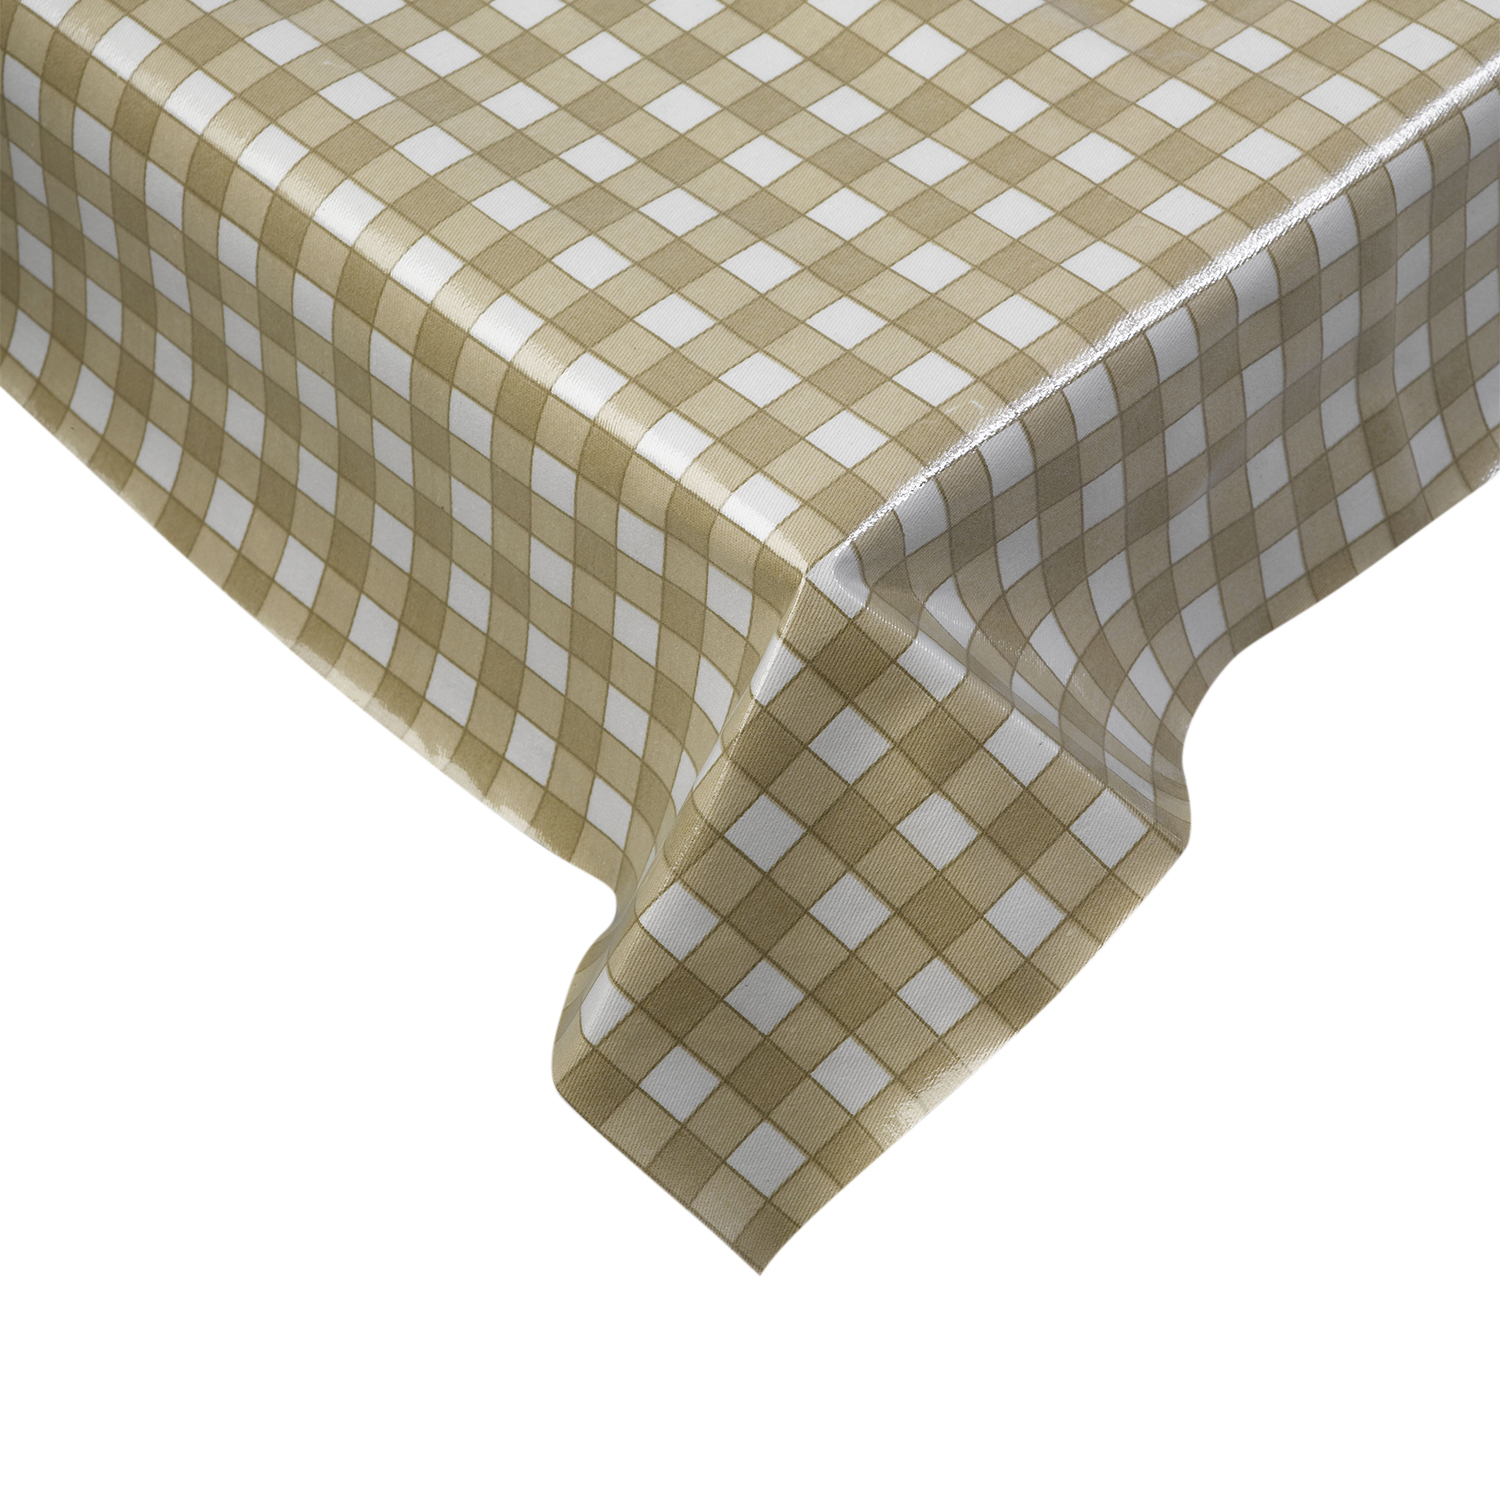 table protector. 100% cotton gingham check tablecloth dining room kitchen linen table protector e